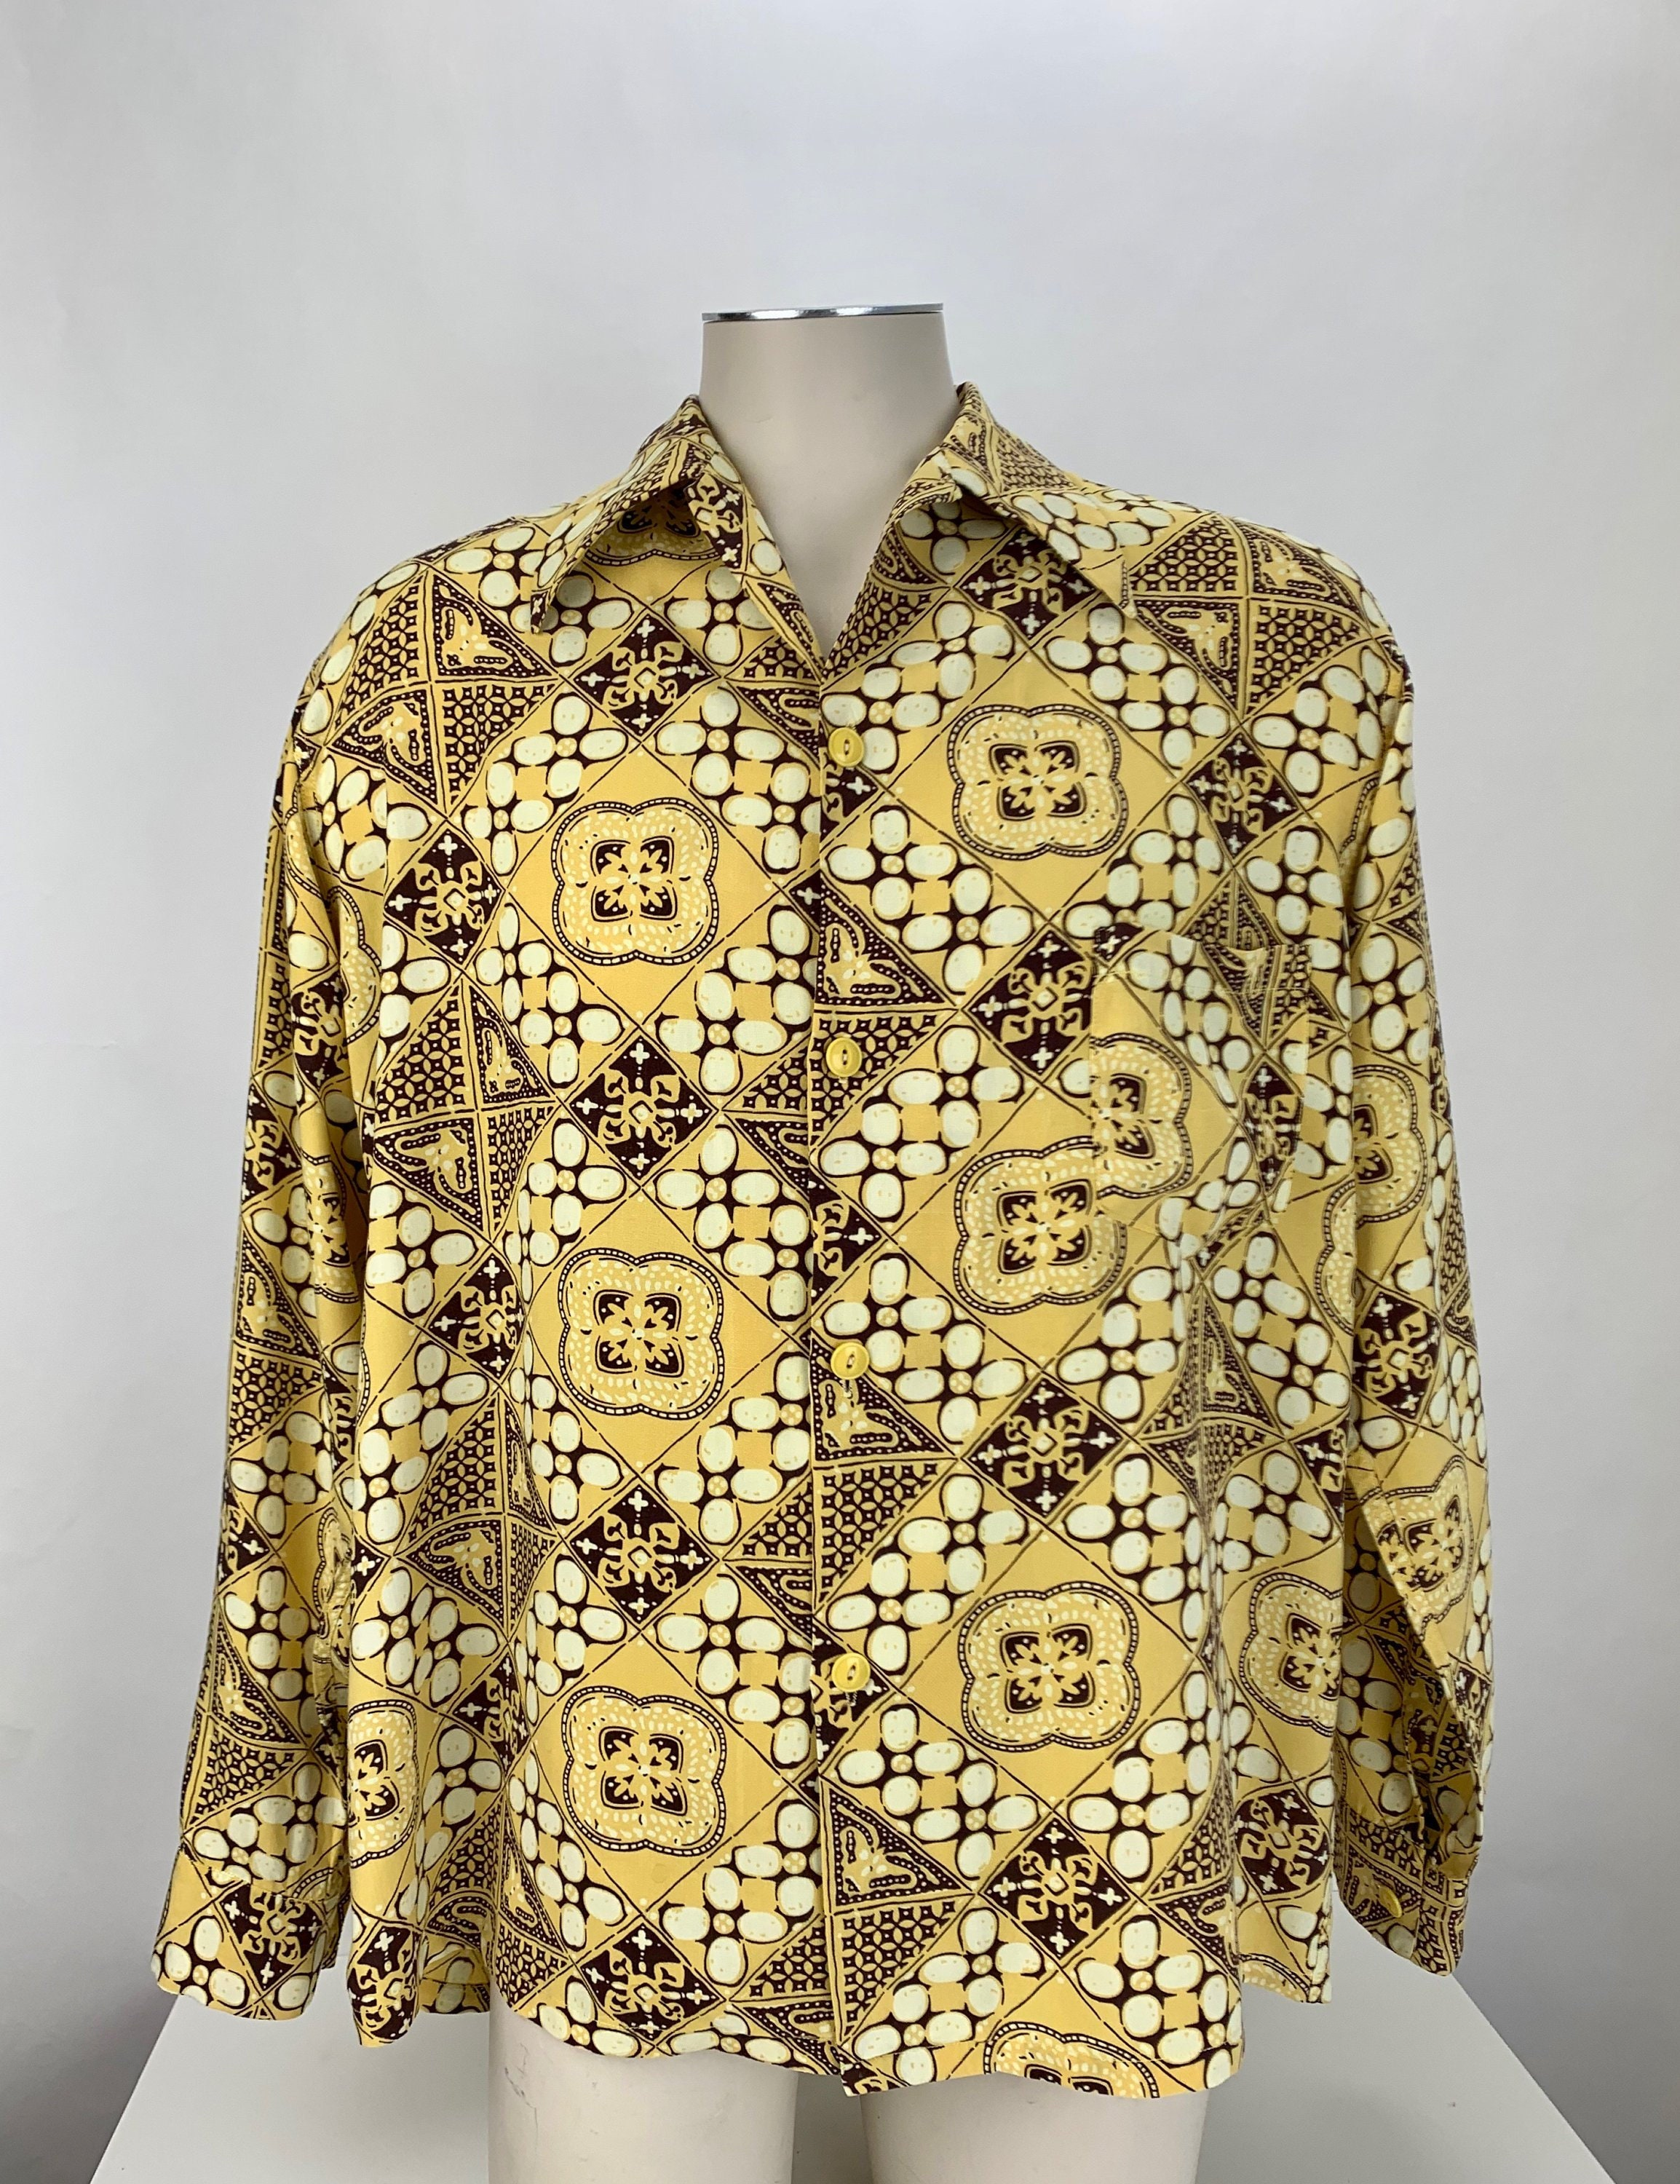 1940s Men's Shirts, Sweaters, Vests 1940s Hawaiian ShirtSoft Printed Rayon Patch Pocket Loop Collar Mens Size Large $22.95 AT vintagedancer.com